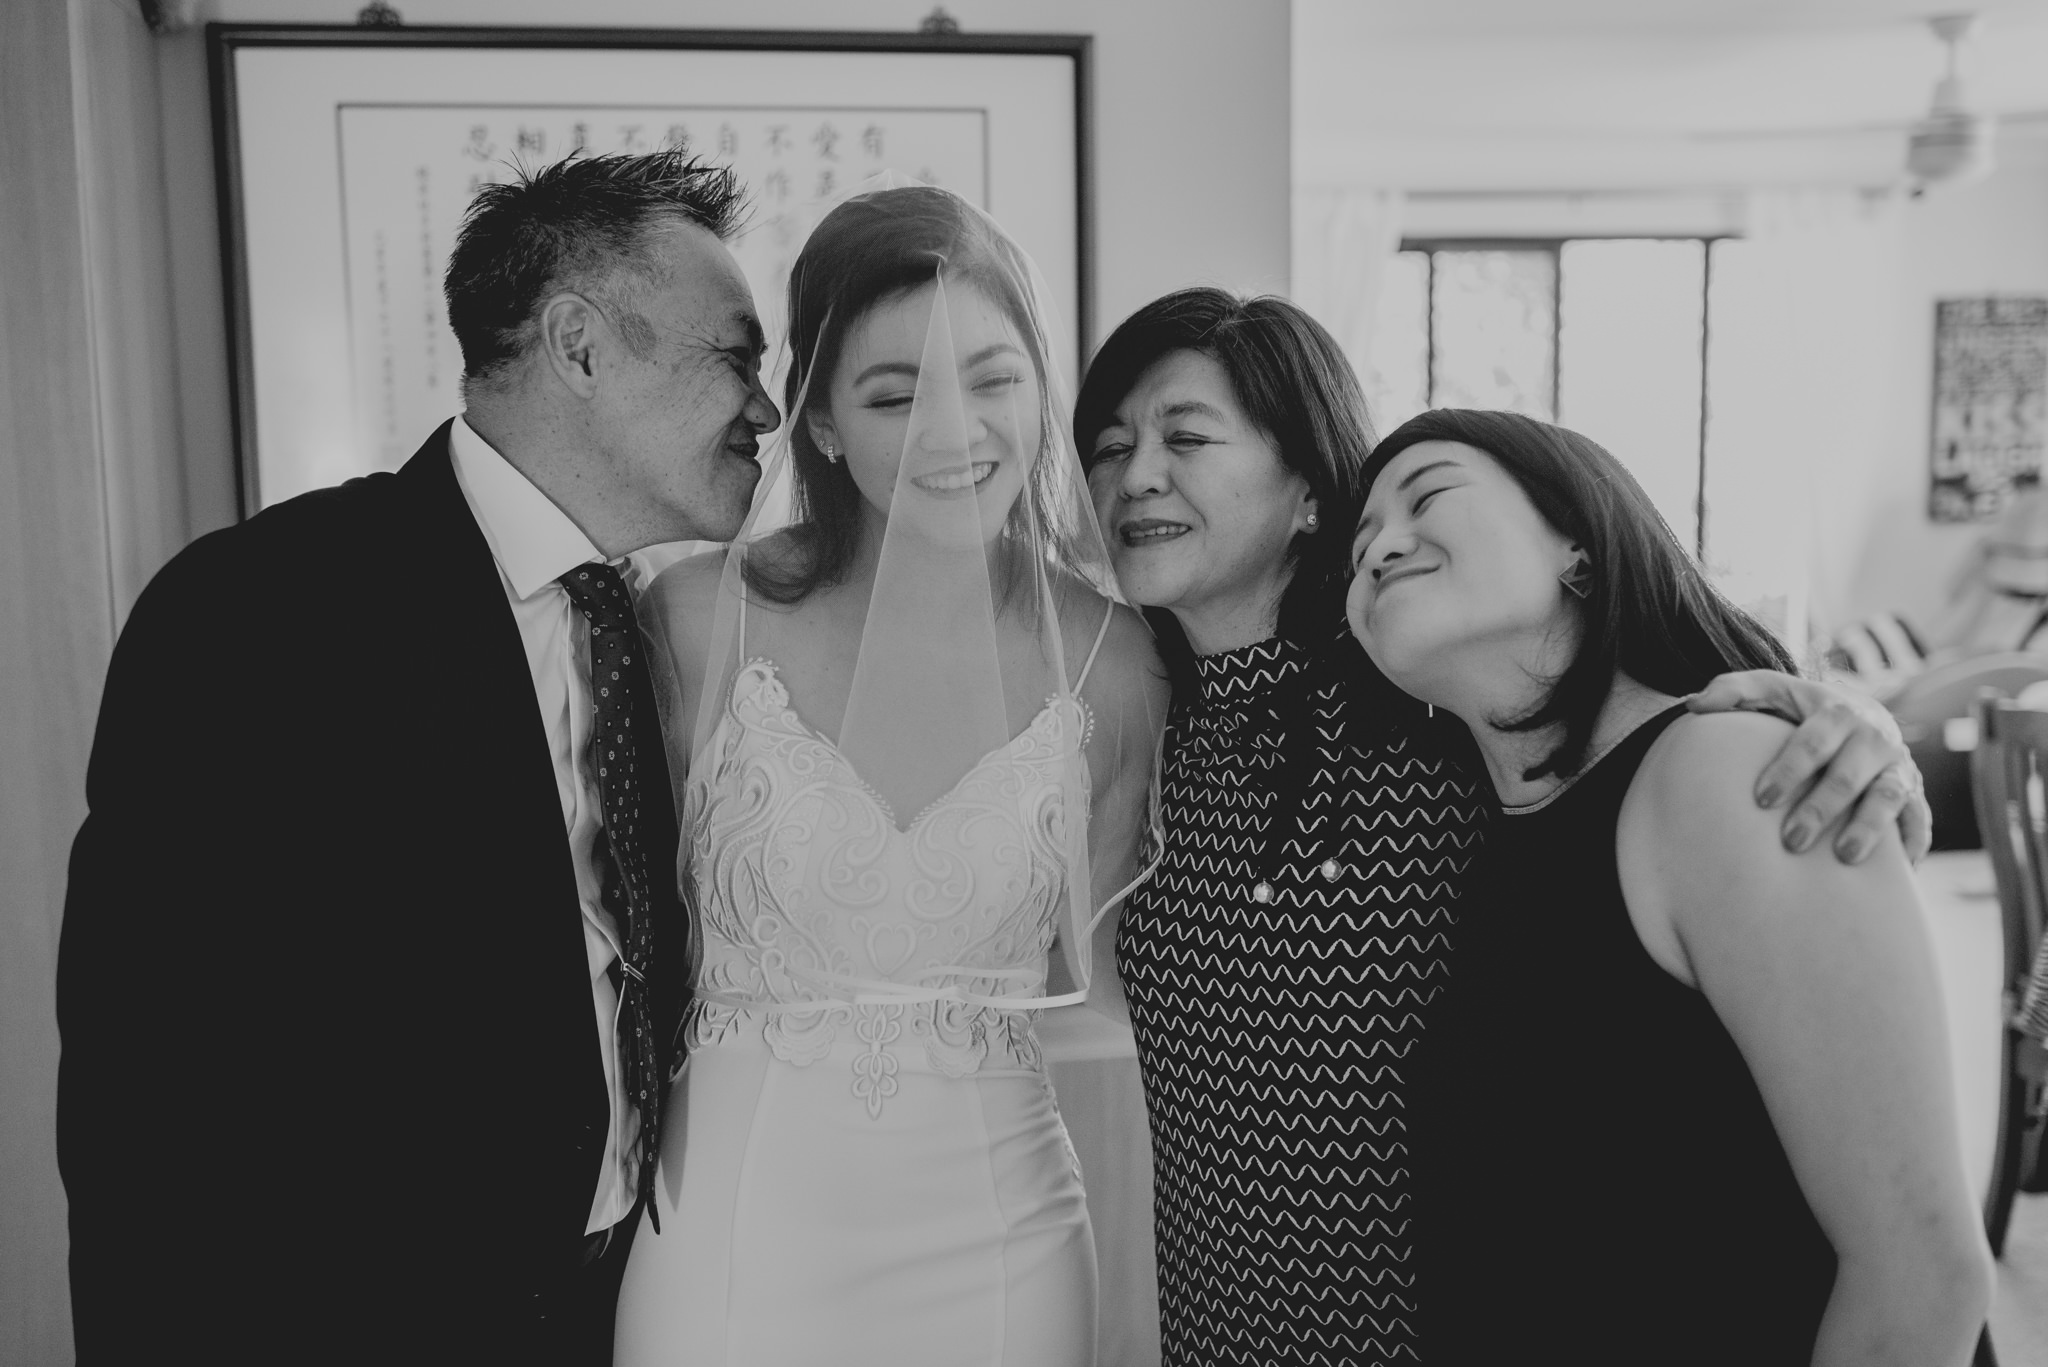 An asian family hugs each other, one of the daughters is in a wedding dress and veil